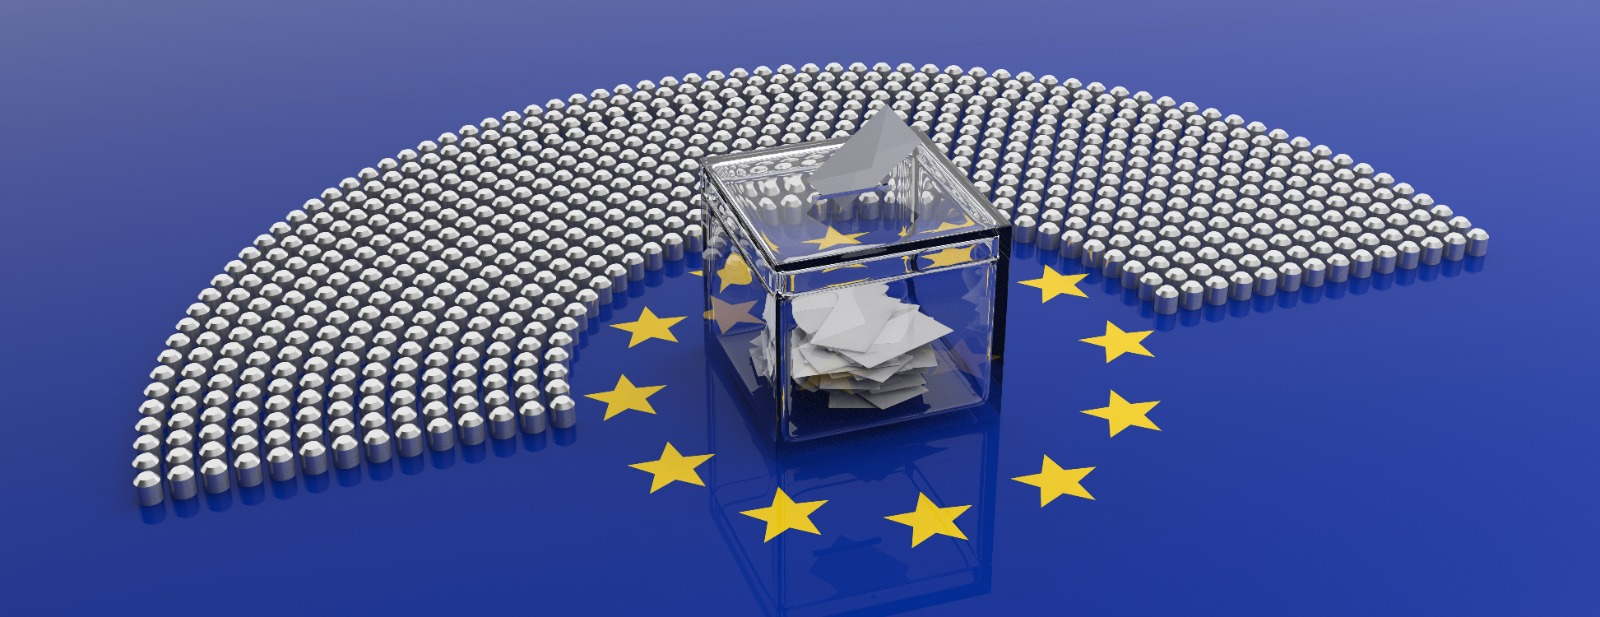 A budget to bring added value to Europe